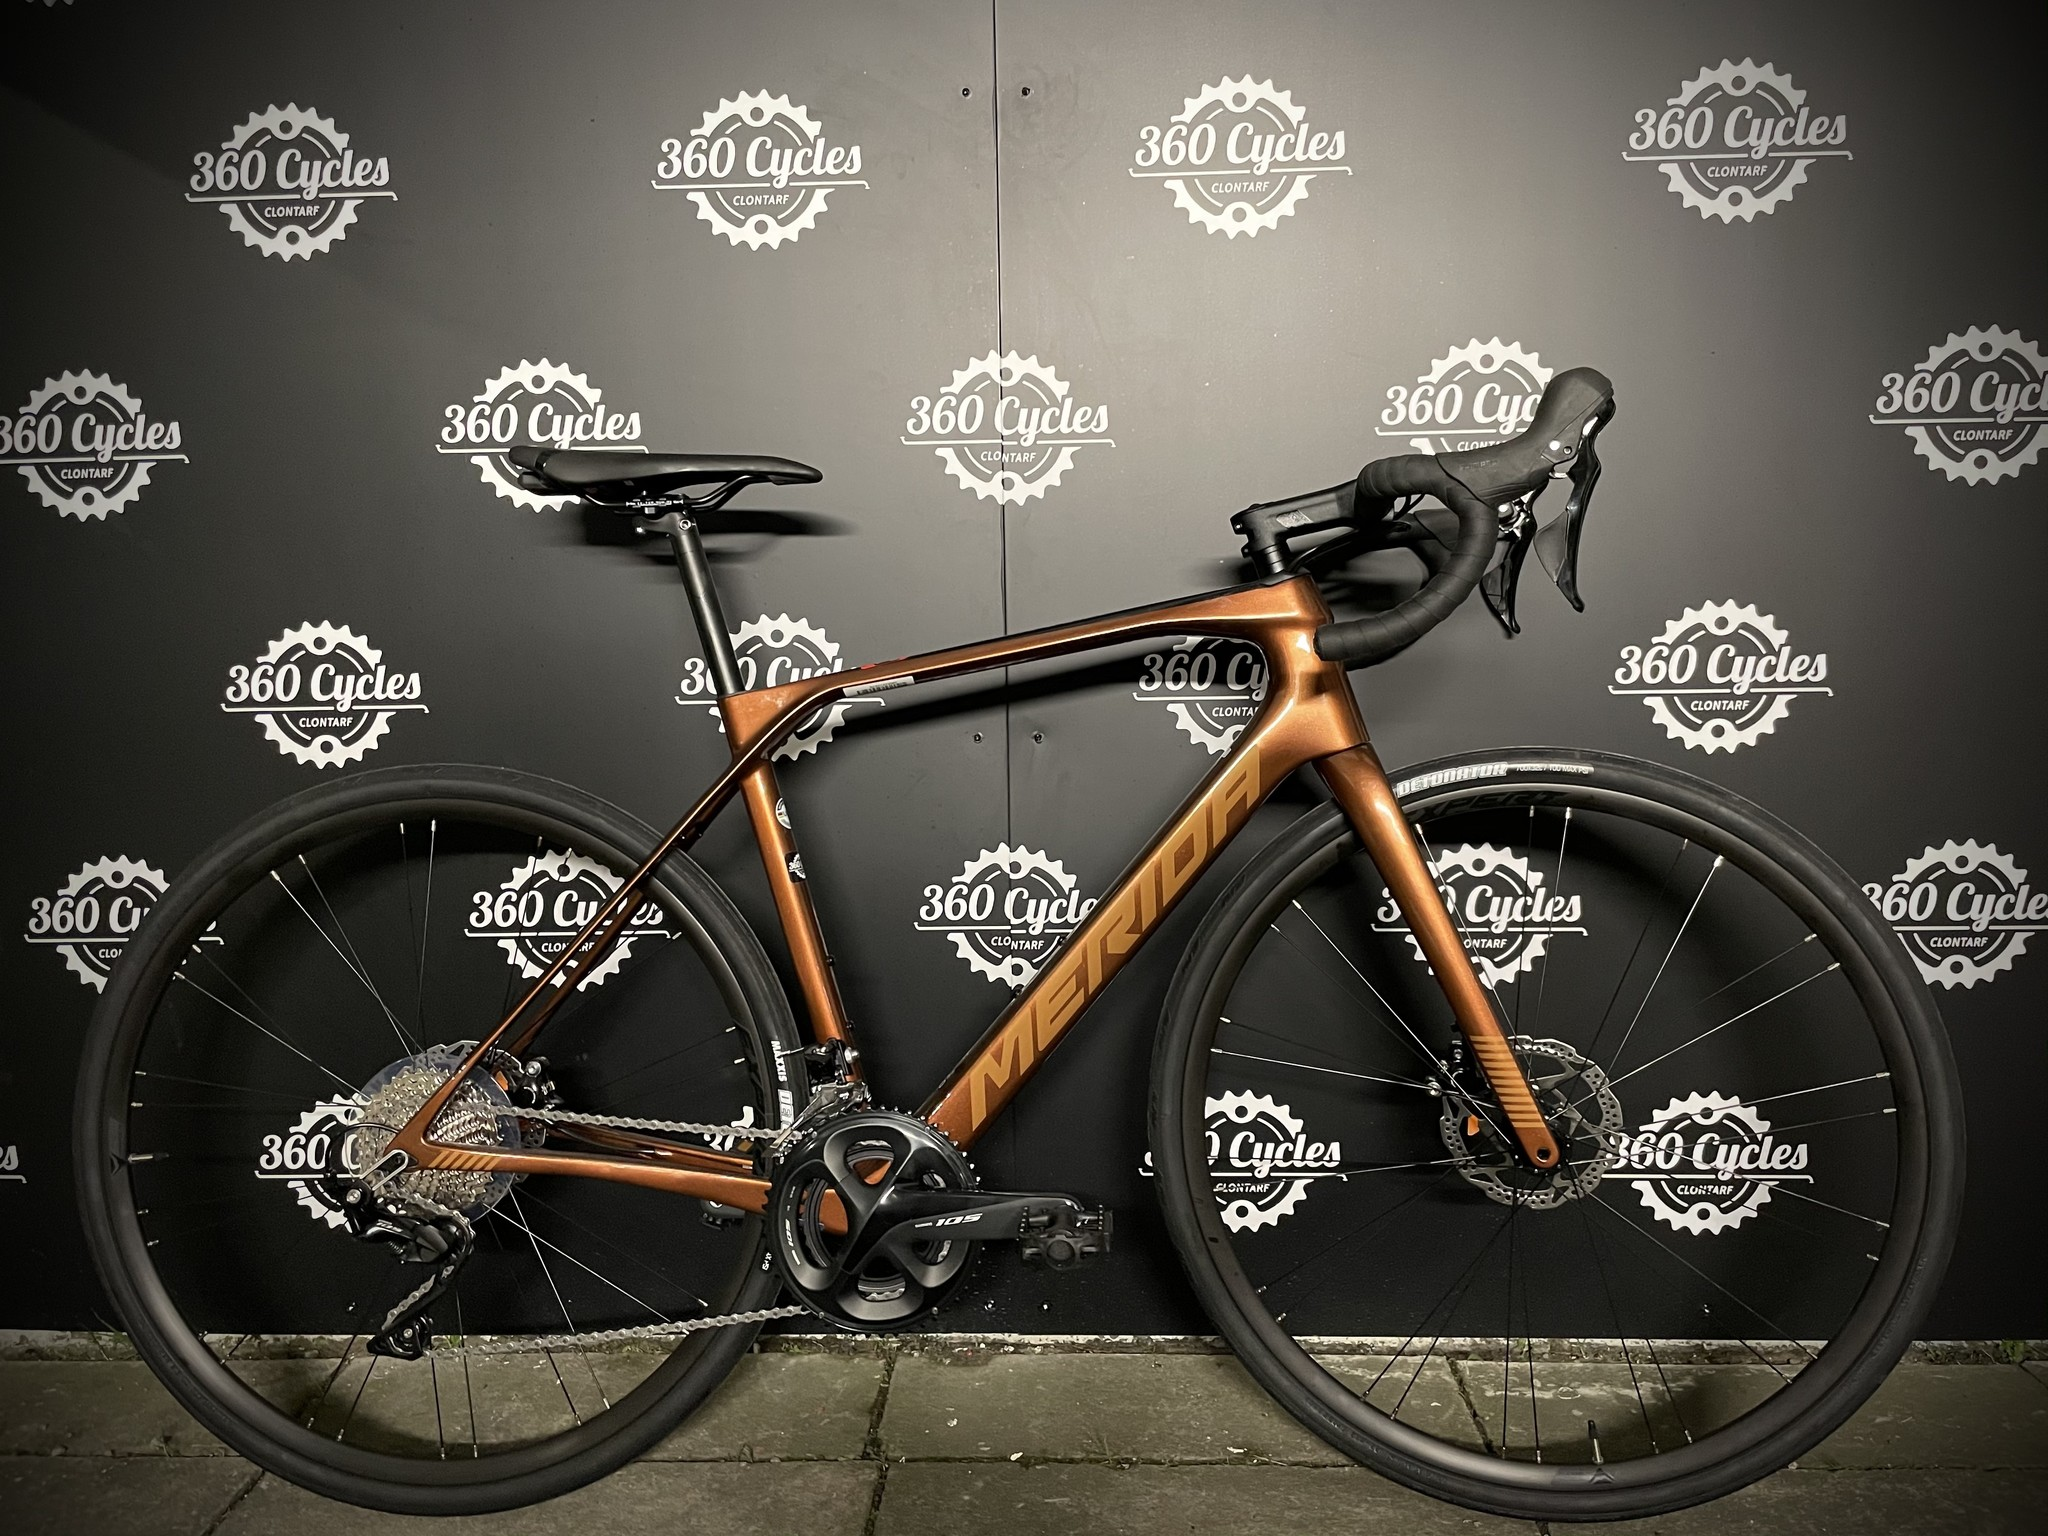 How to choose a correct style and size bike?